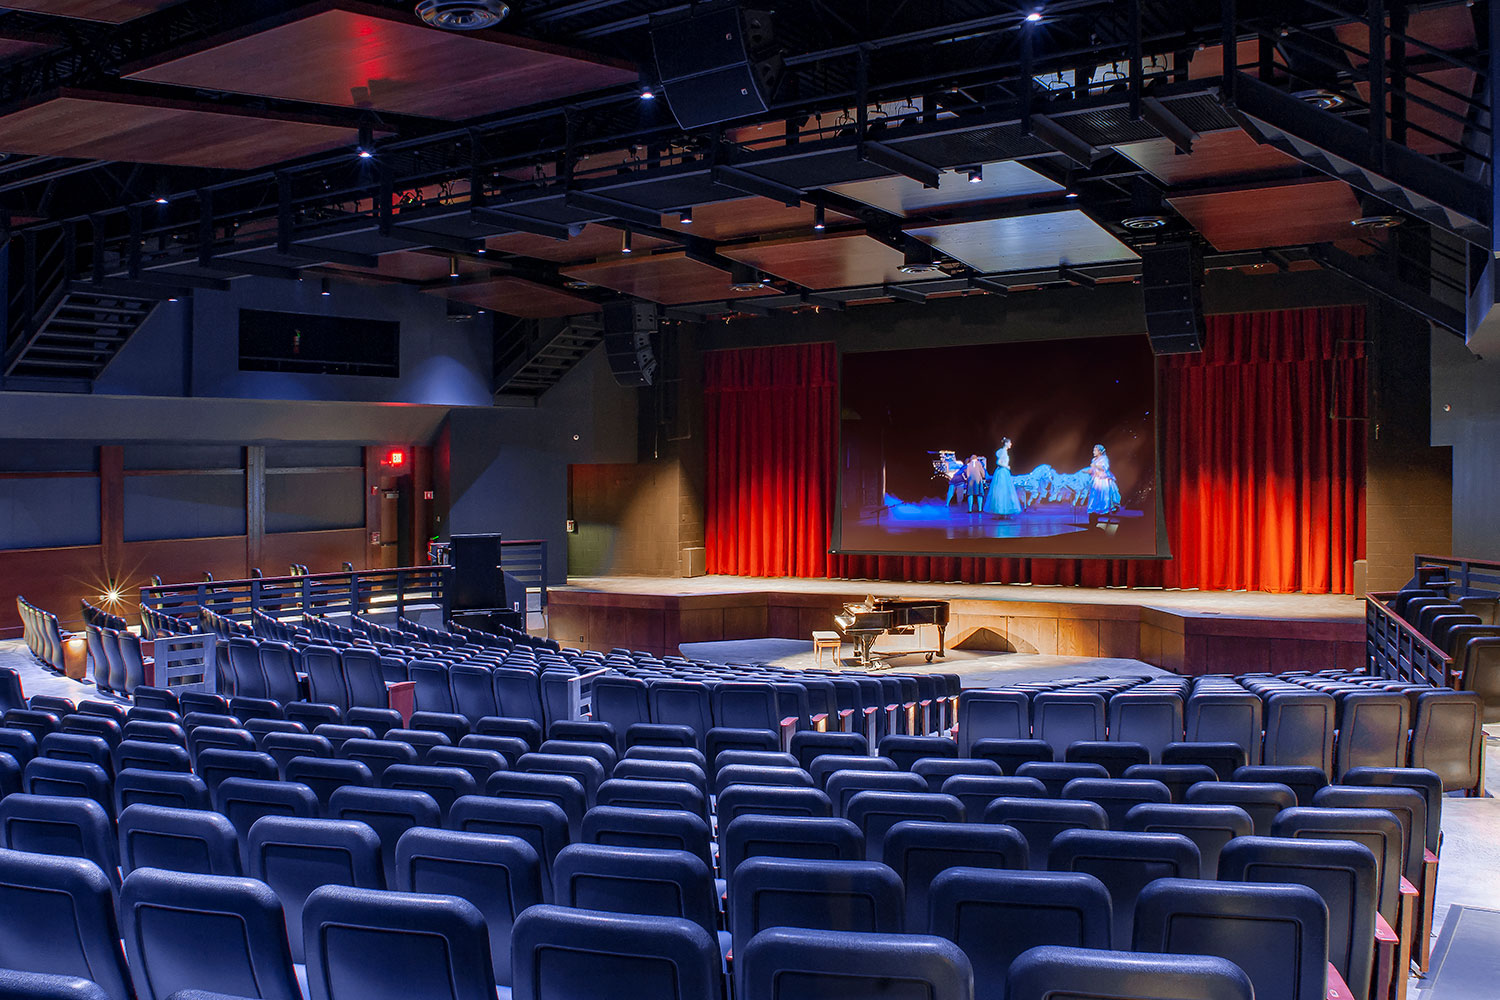 Goshen High School new auditorium in Goshen, NY. WSDG was retained to acoustically measure the space and collaborate on the redesign with LAN Associates to optimize the space for these needs while still retaining the aesthetic goals of the redesign. Front side view.